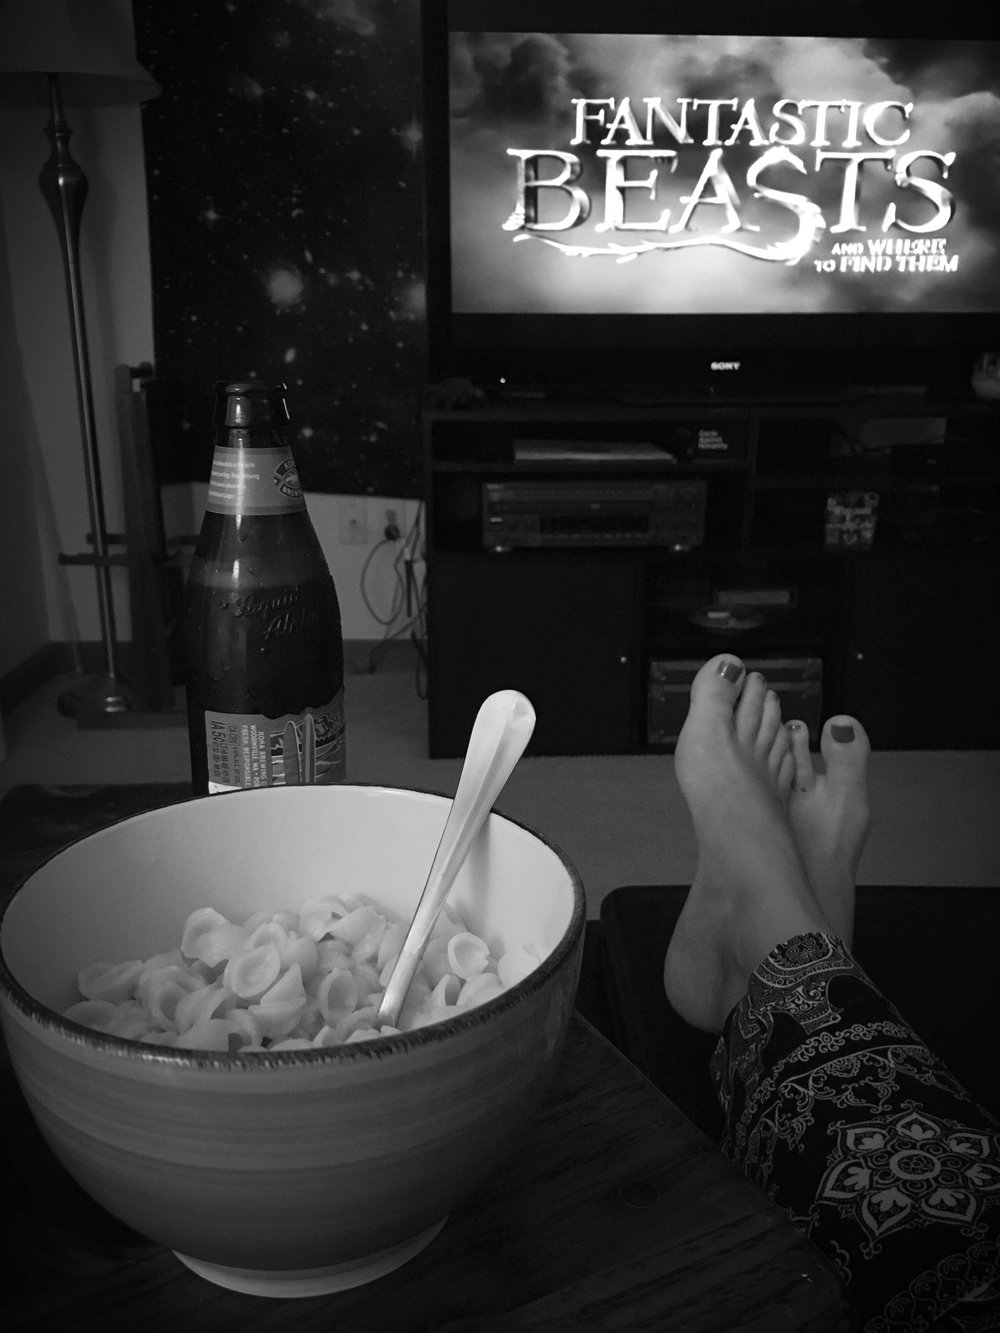 Me, recently enjoying mac and cheese, beer, and Fantastic Beasts.